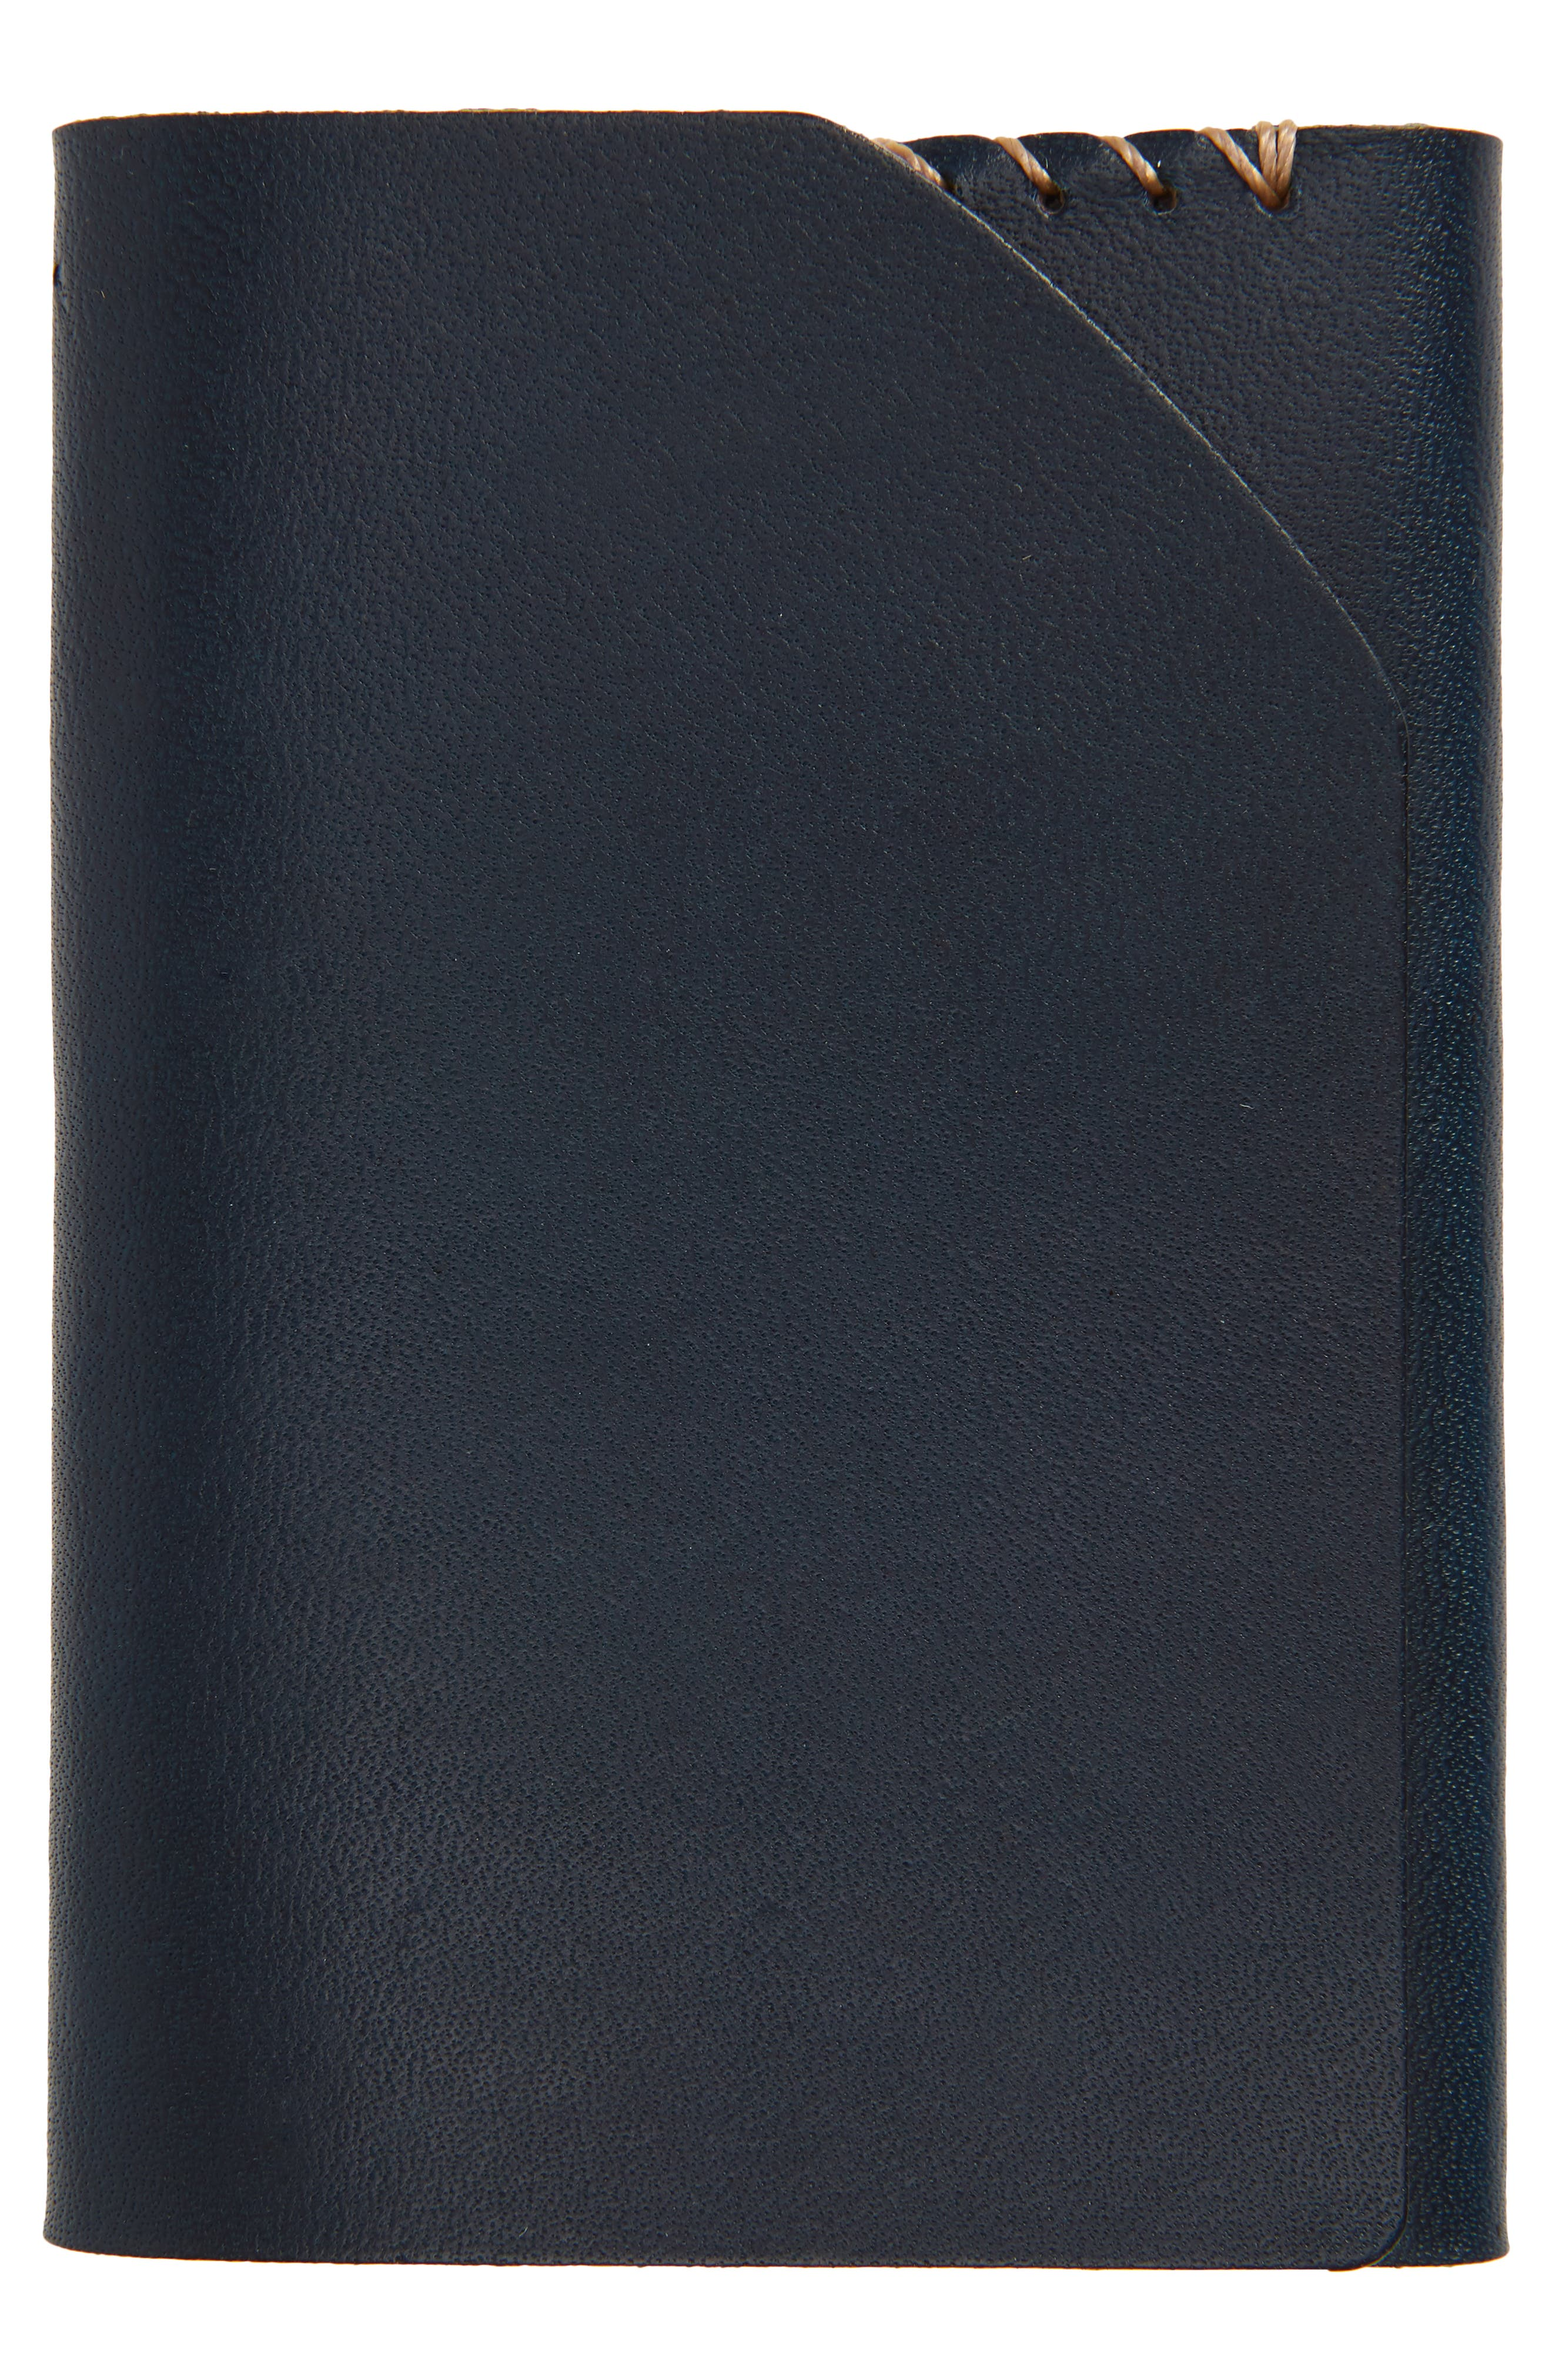 Cash Fold Deluxe Leather Wallet